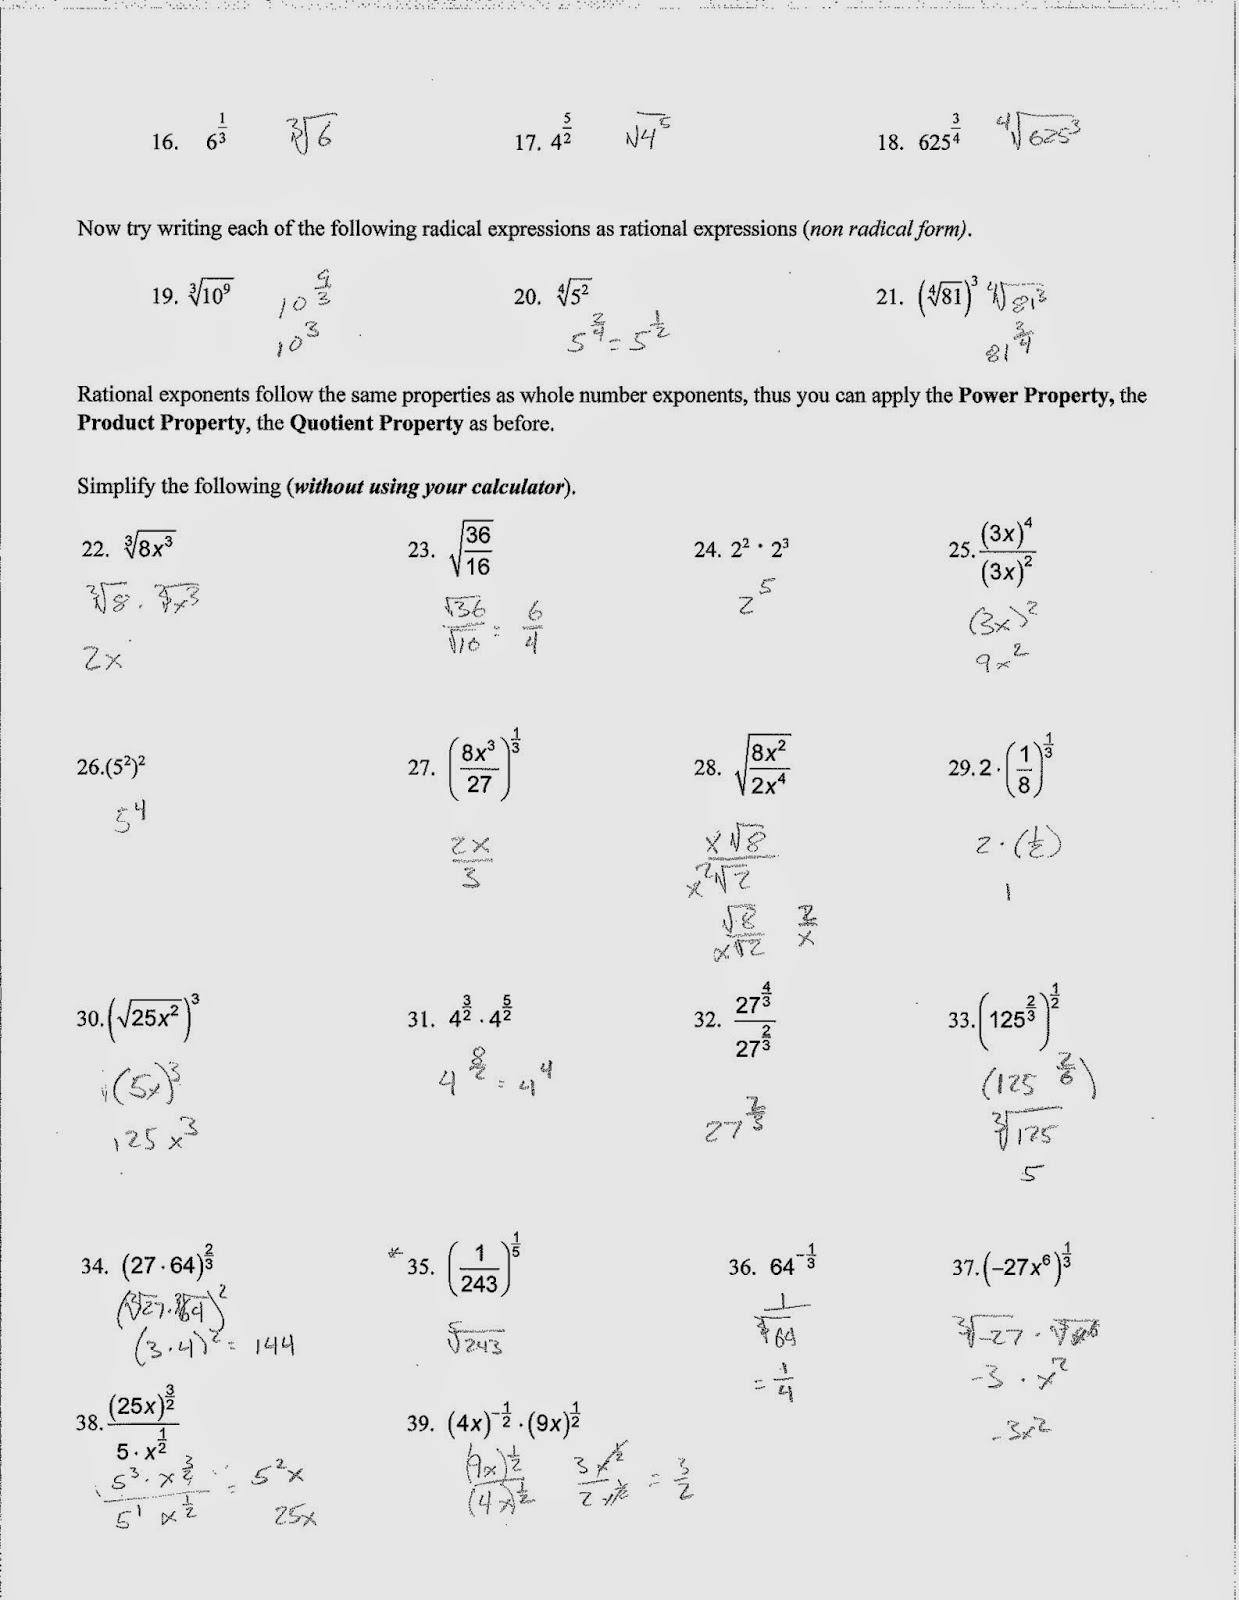 Worksheets Simplifying Radical Expressions Worksheet Answers mr dorans algebra 2 april 2014 the homework is to finish radical expressions and rational exponents exploration ws be checked for completion on friday 44